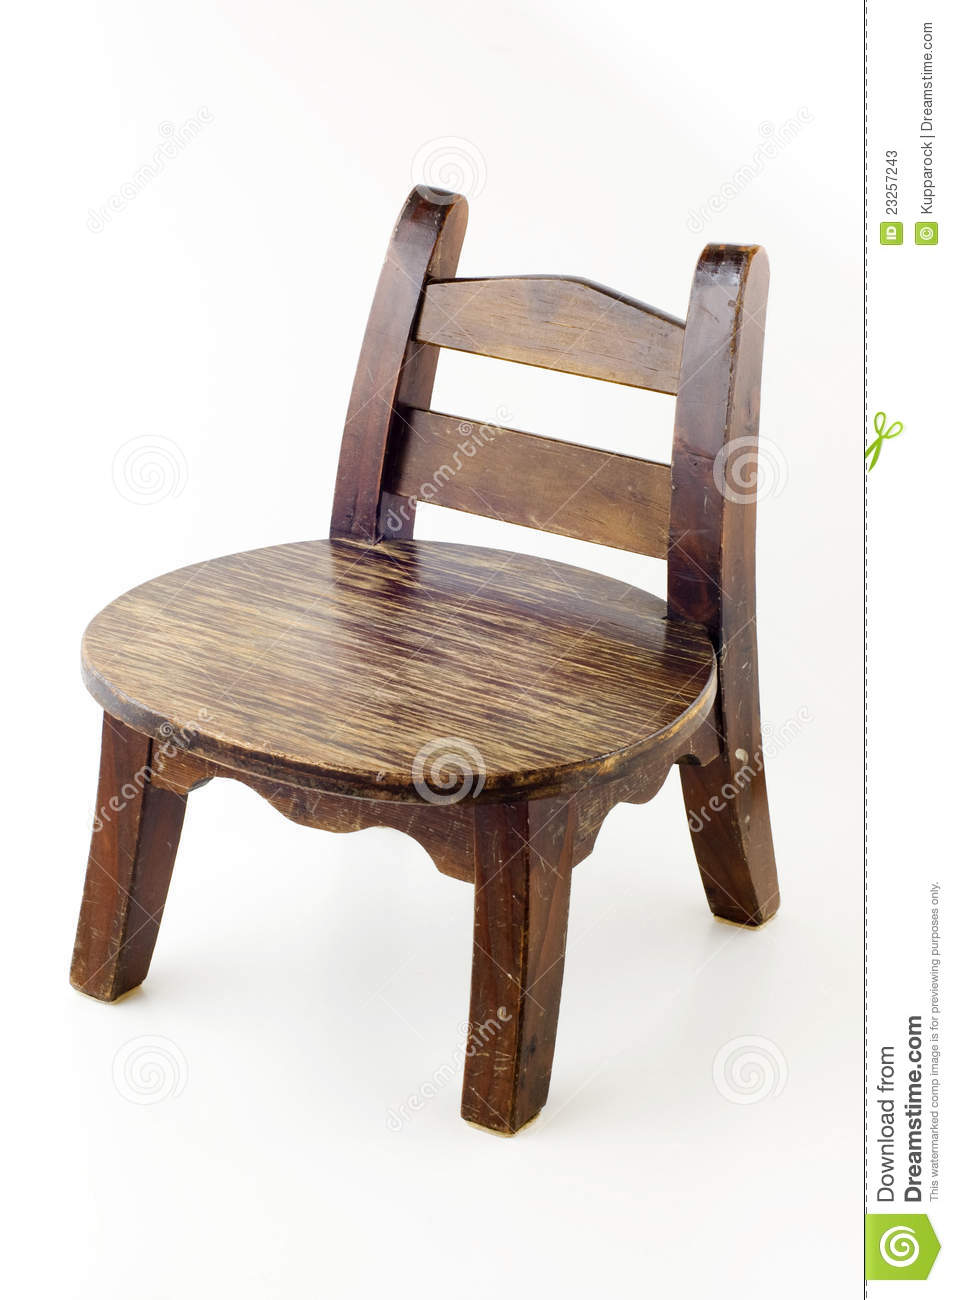 A Small Old Chair Stock Photos  Image 23257243